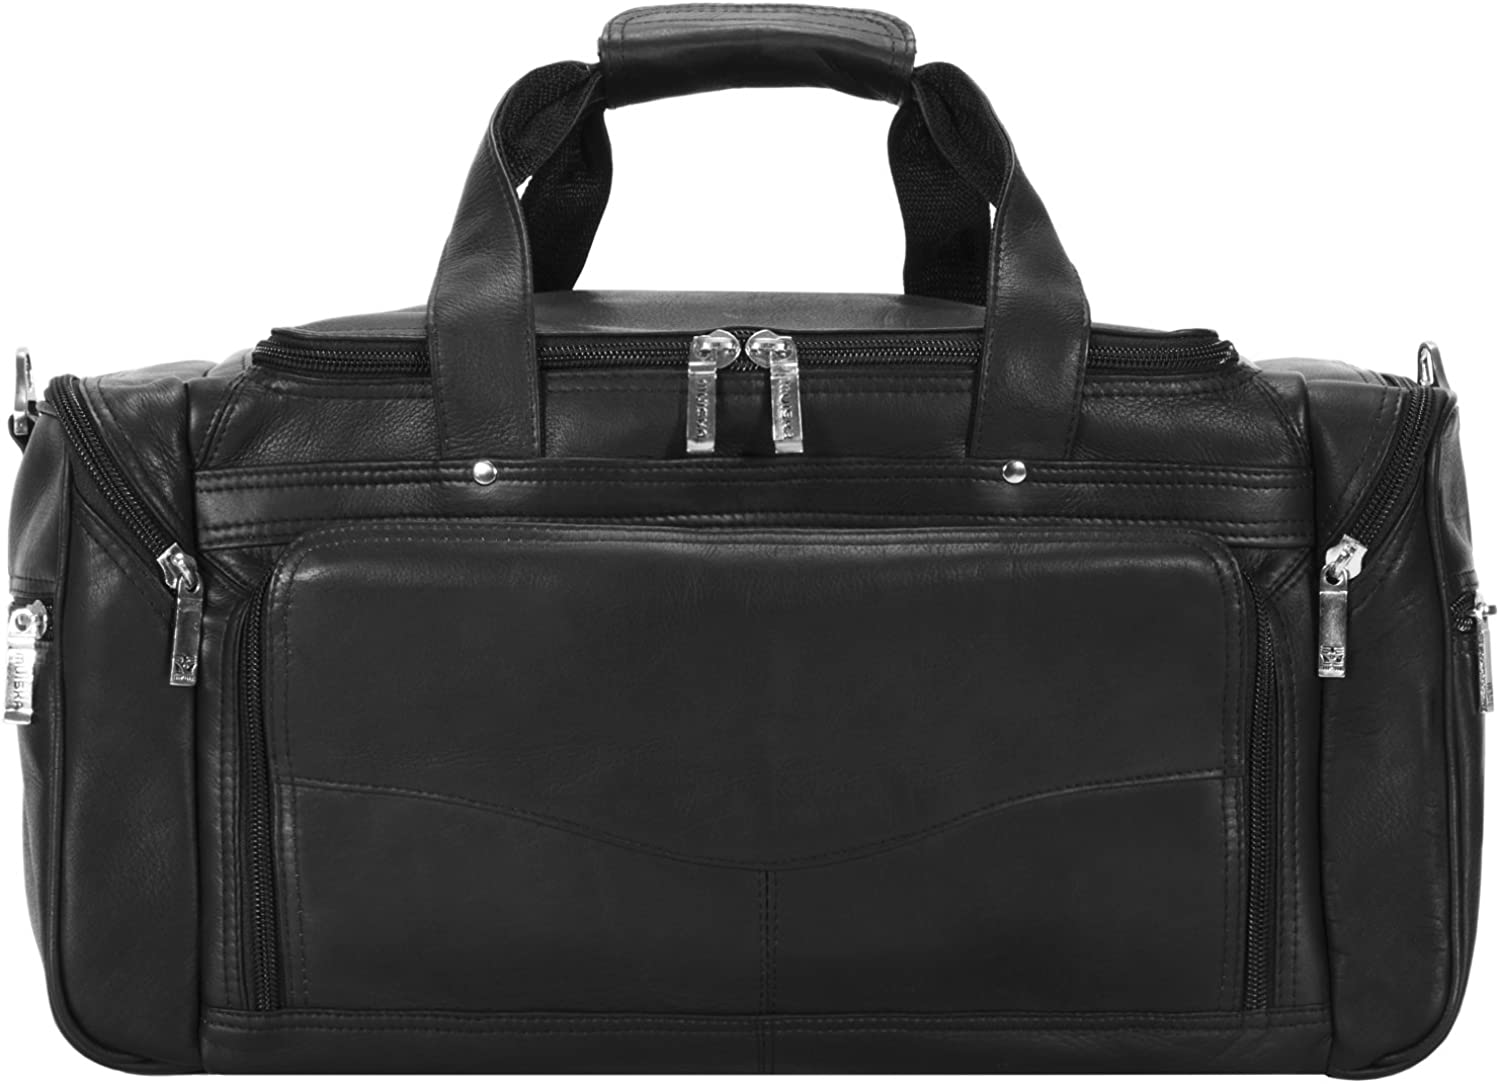 Muiska 20 Inch Leather Carry On Duffel Bag Carry-On Luggage